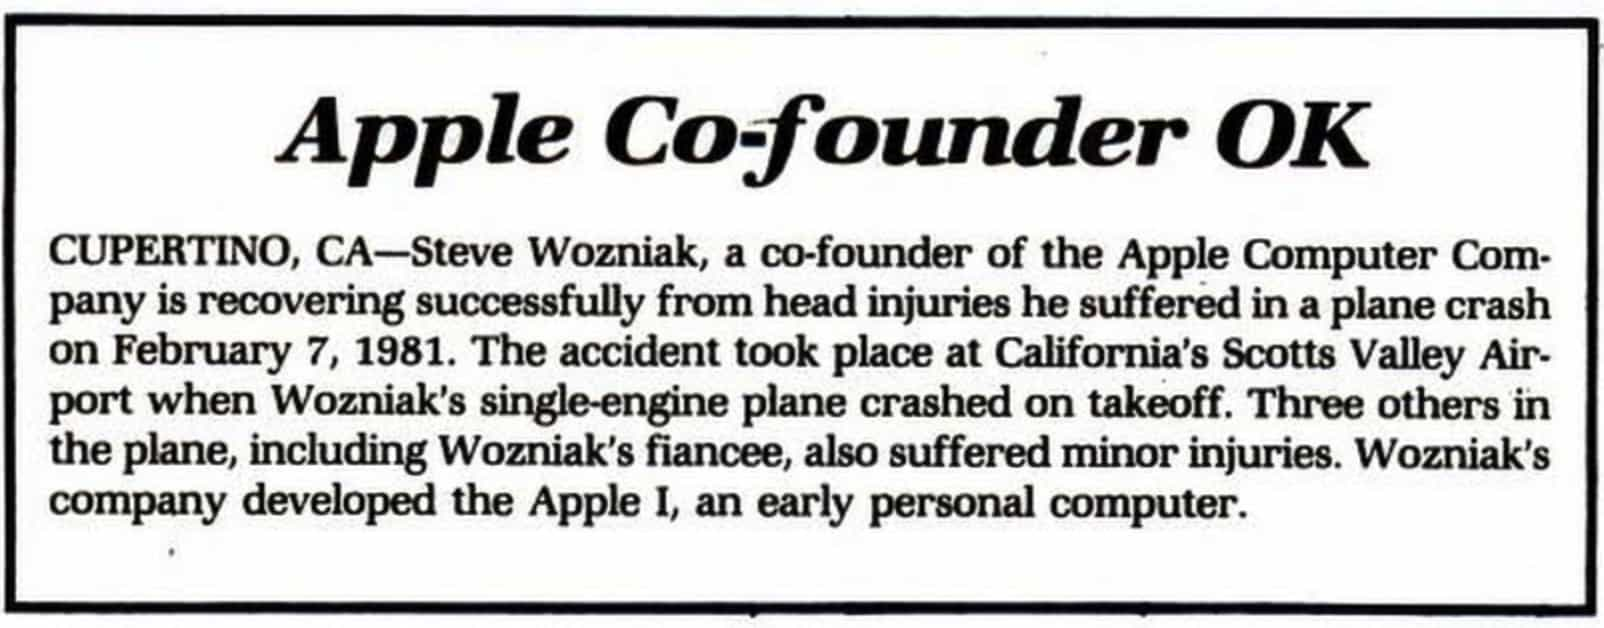 Today in Apple history: Steve Wozniak survives a plane crash